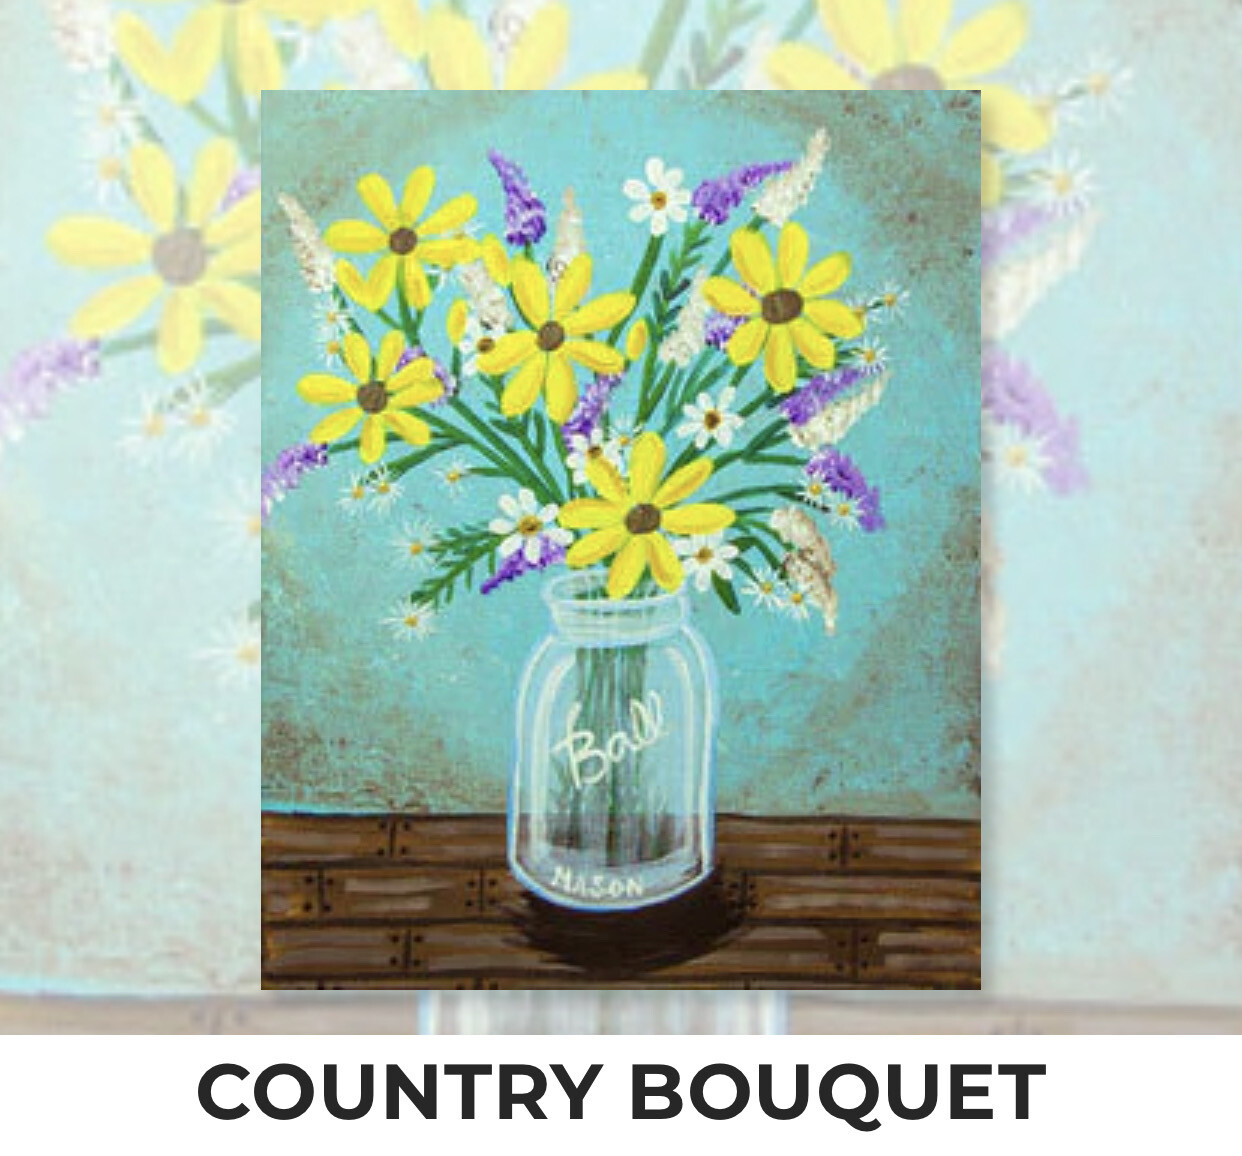 Country Bouquet ADULT Acrylic Paint On Canvas DIY Art Kit